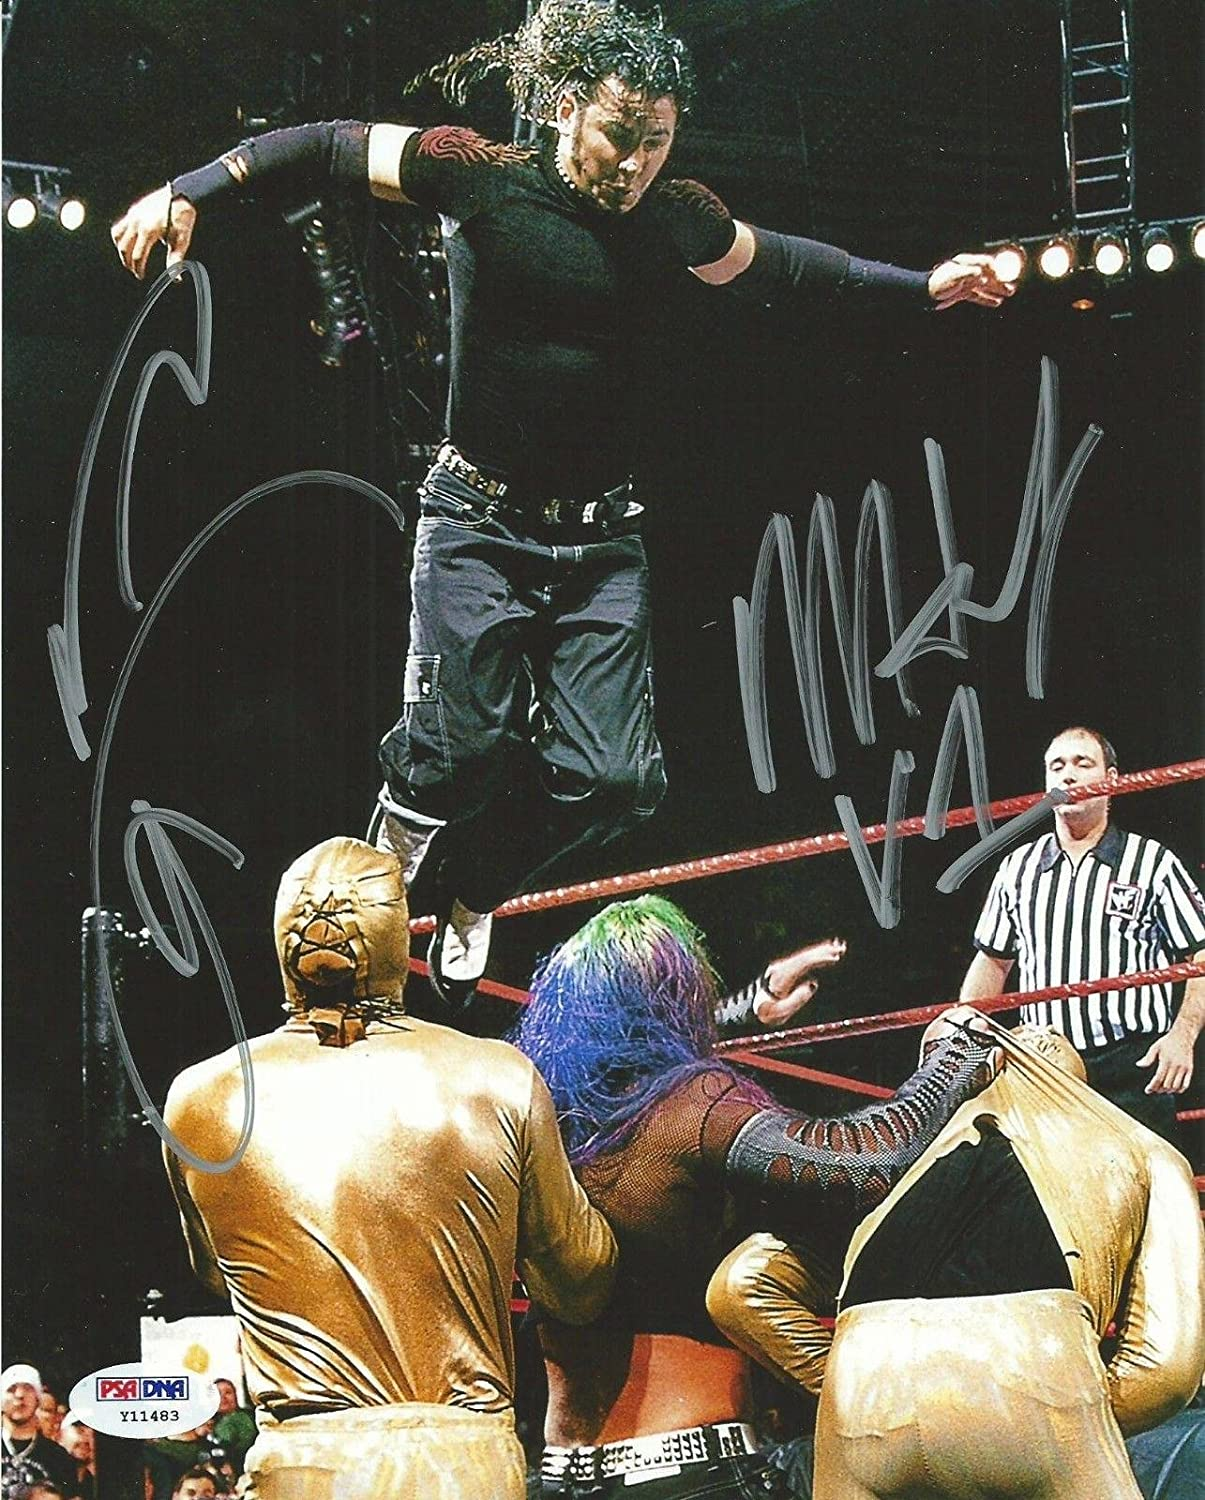 Wwe tna jeff hardy autographed 11x14 photo auto signed autograph - Matt Jeff Hardy Signed Wwe 8x10 Photo Coa Boyz Boys Picture Autograph Psa Dna Certified Autographed Wrestling Photos At Amazon S Sports Collectibles